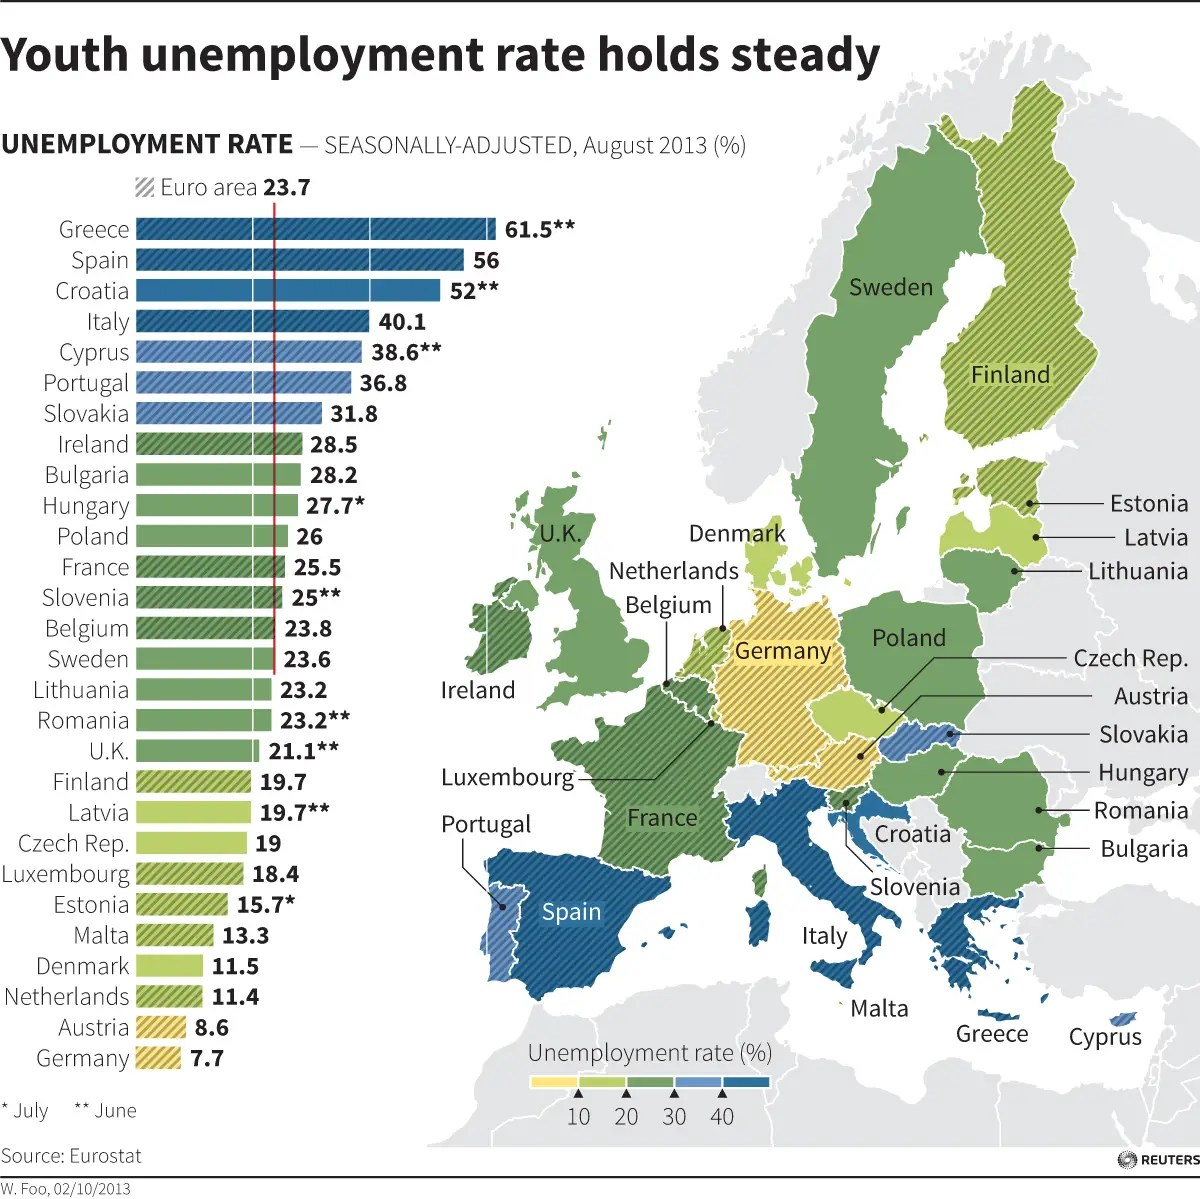 Europe's Youth Unemployment (Fuente: http://www.businessinsider.com/europes-youth-unemployment-crisis-in-one-grim-map-2013-10)